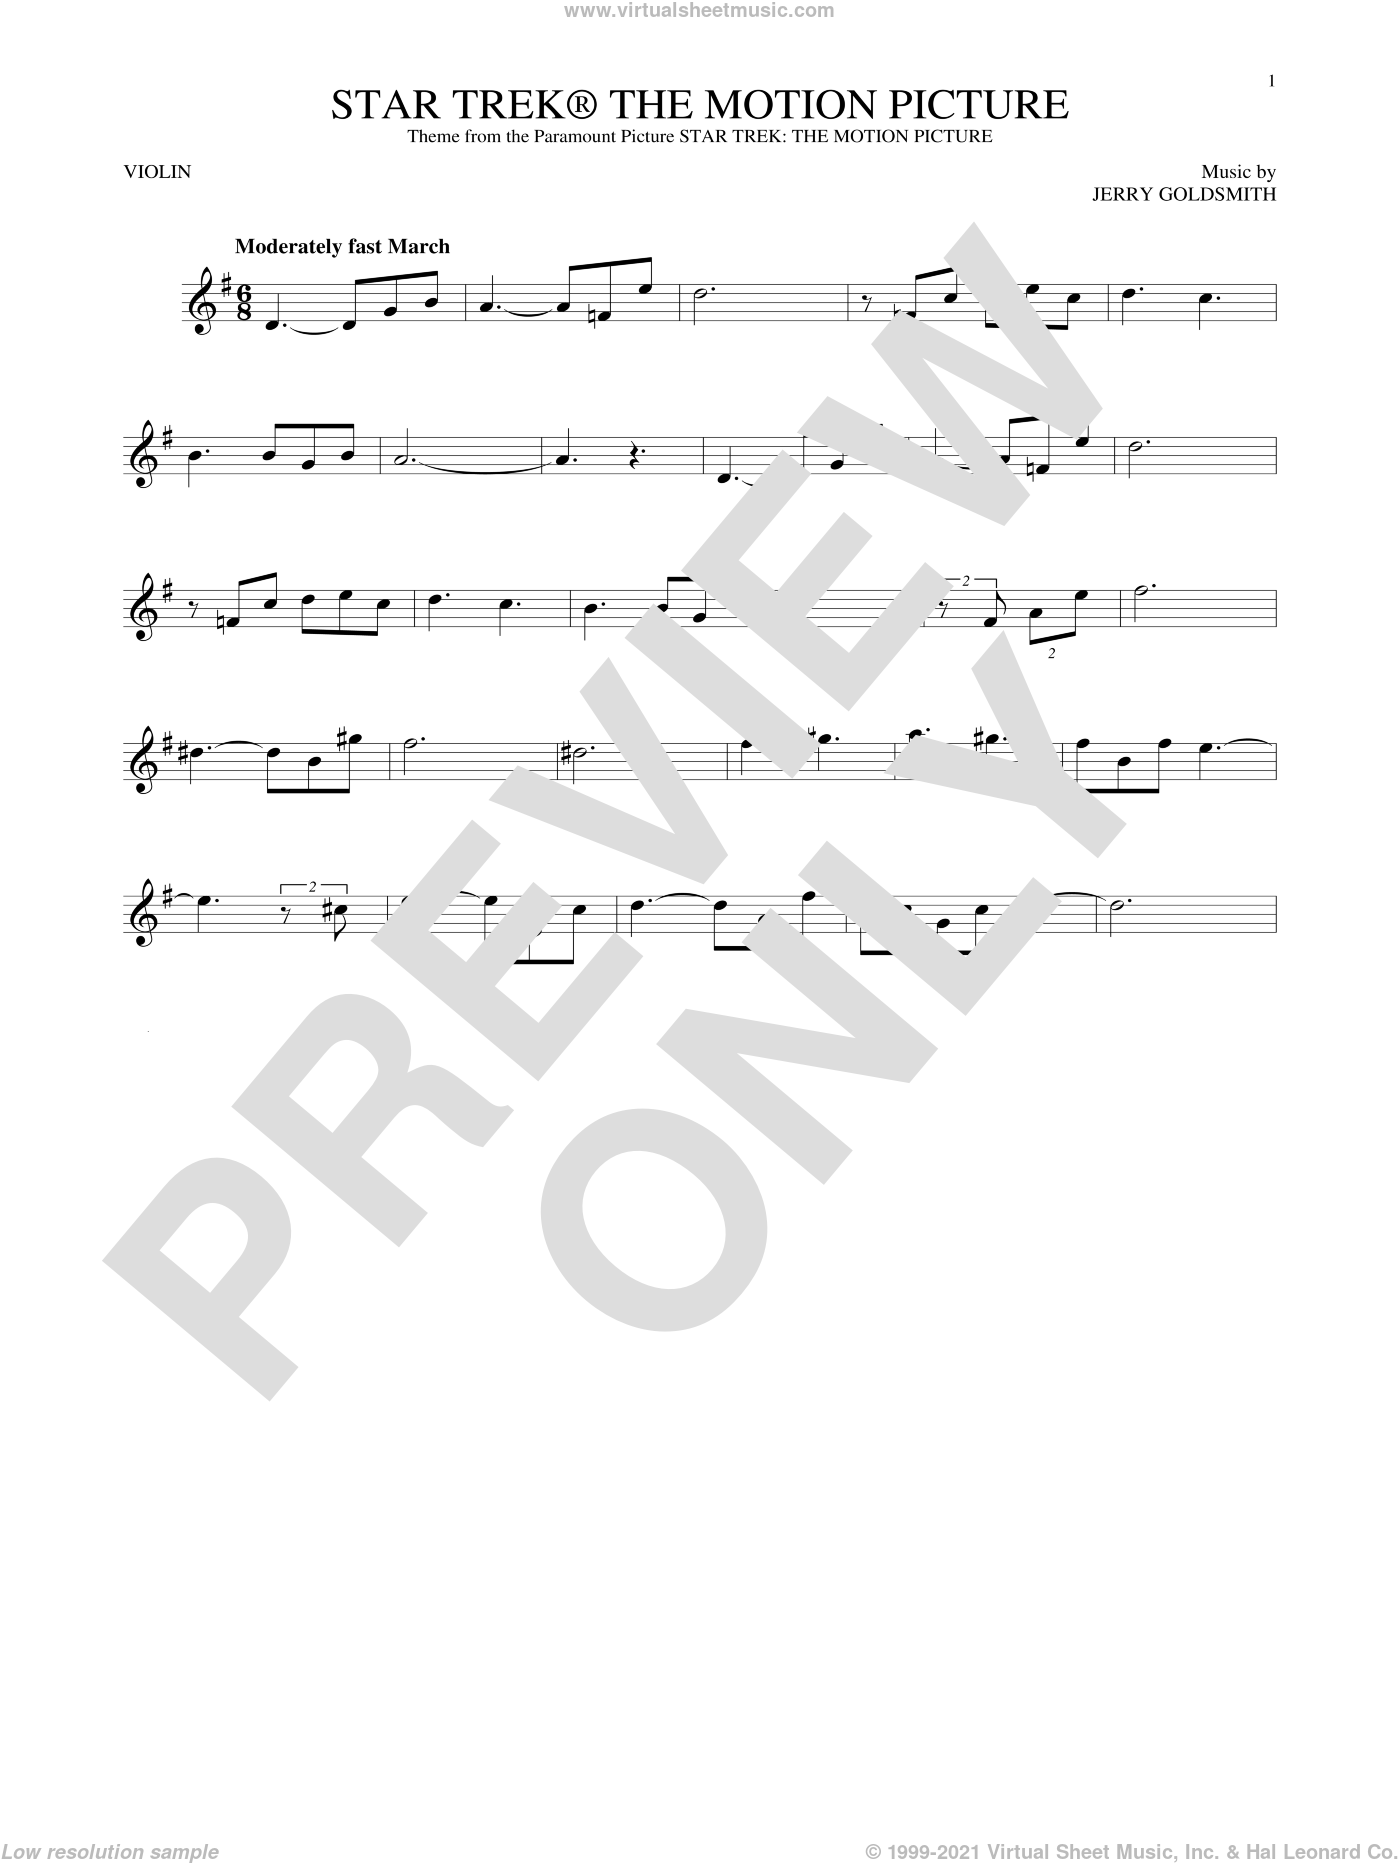 Star Trek The Motion Picture sheet music for violin solo by Jerry Goldsmith, intermediate skill level